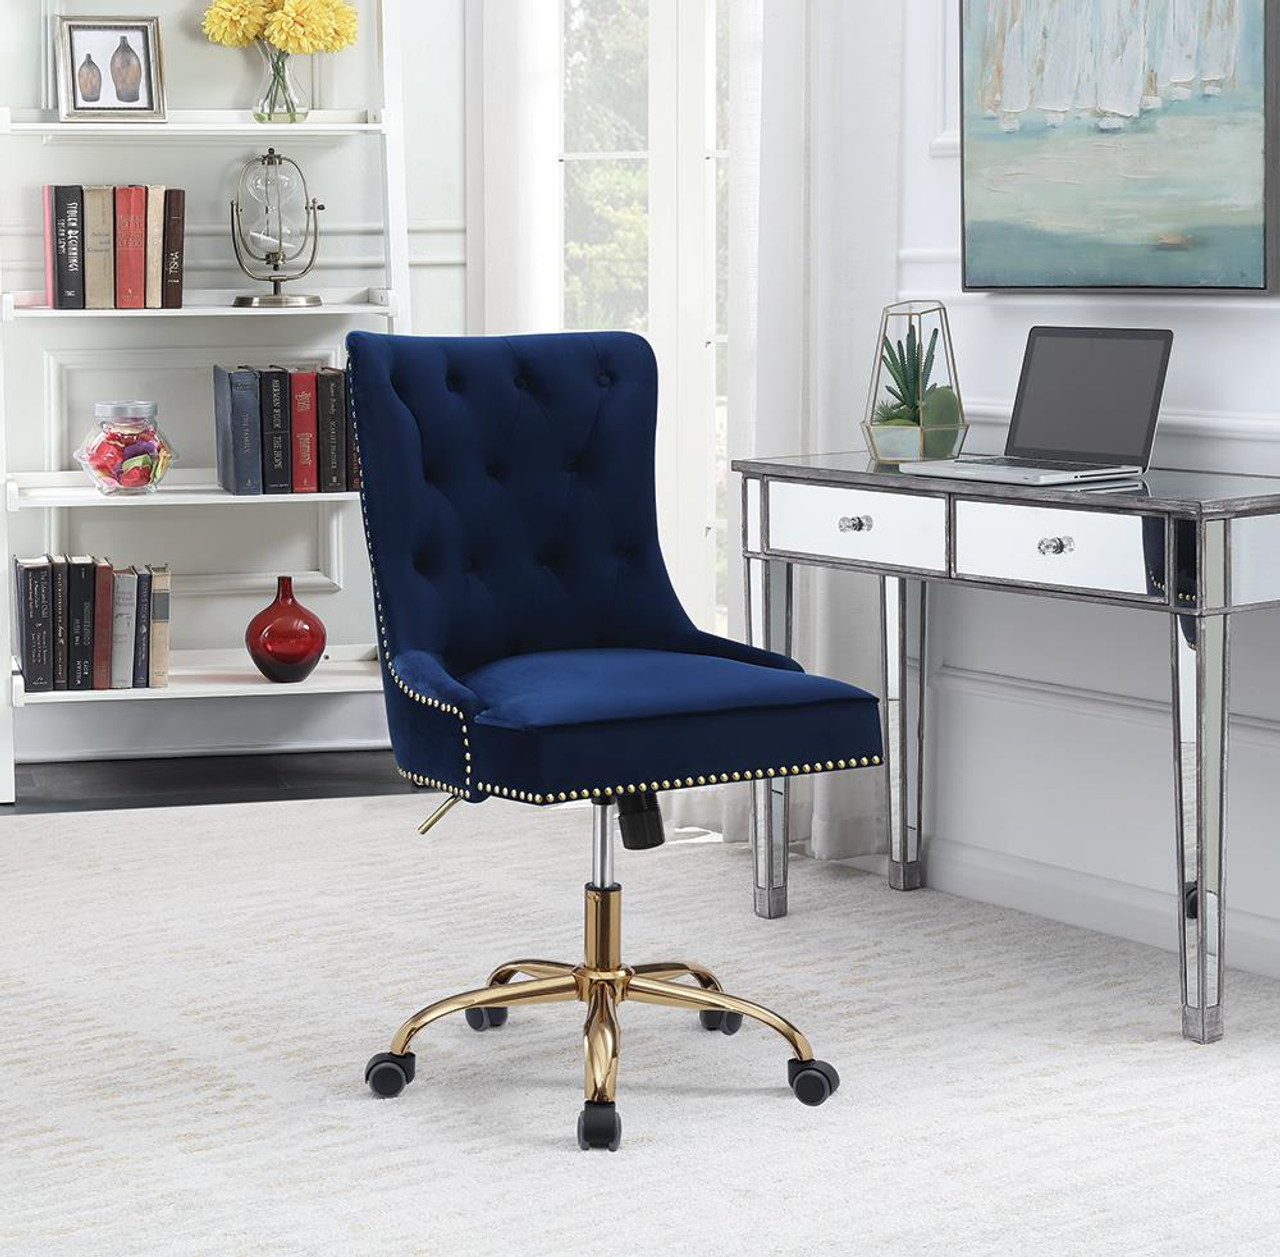 The Home Office Chairs Blue Upholstered Office Chair With Nailhead Blue And Brass 801984 Available At Jaxco Furniture Serving Jacksonville Fl And Surrounding Areas